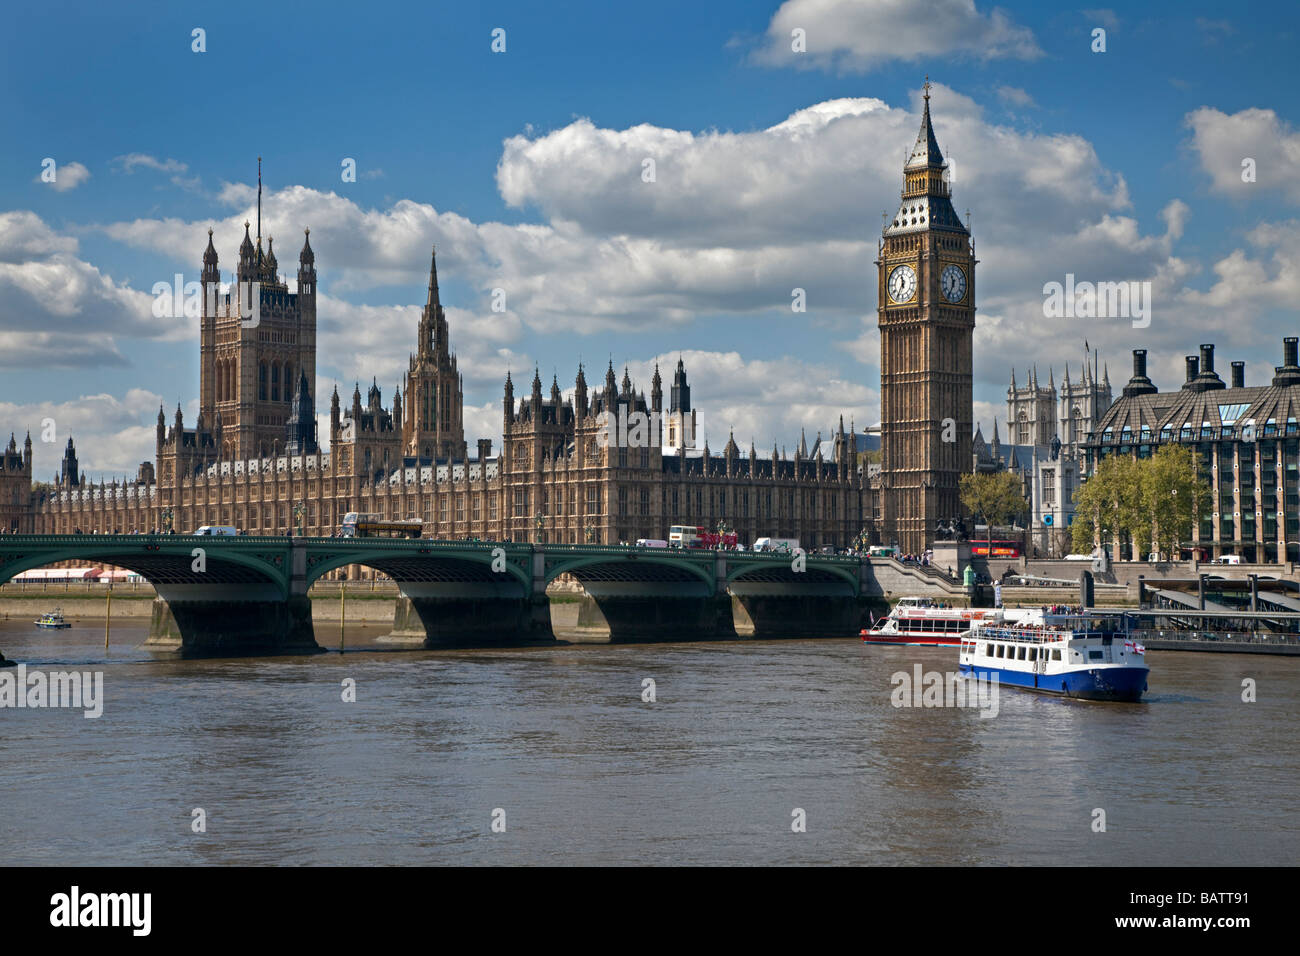 Houses of Parliament, Big Ben, River Thames and Tower Bridge, Westminster, London, England - Stock Image